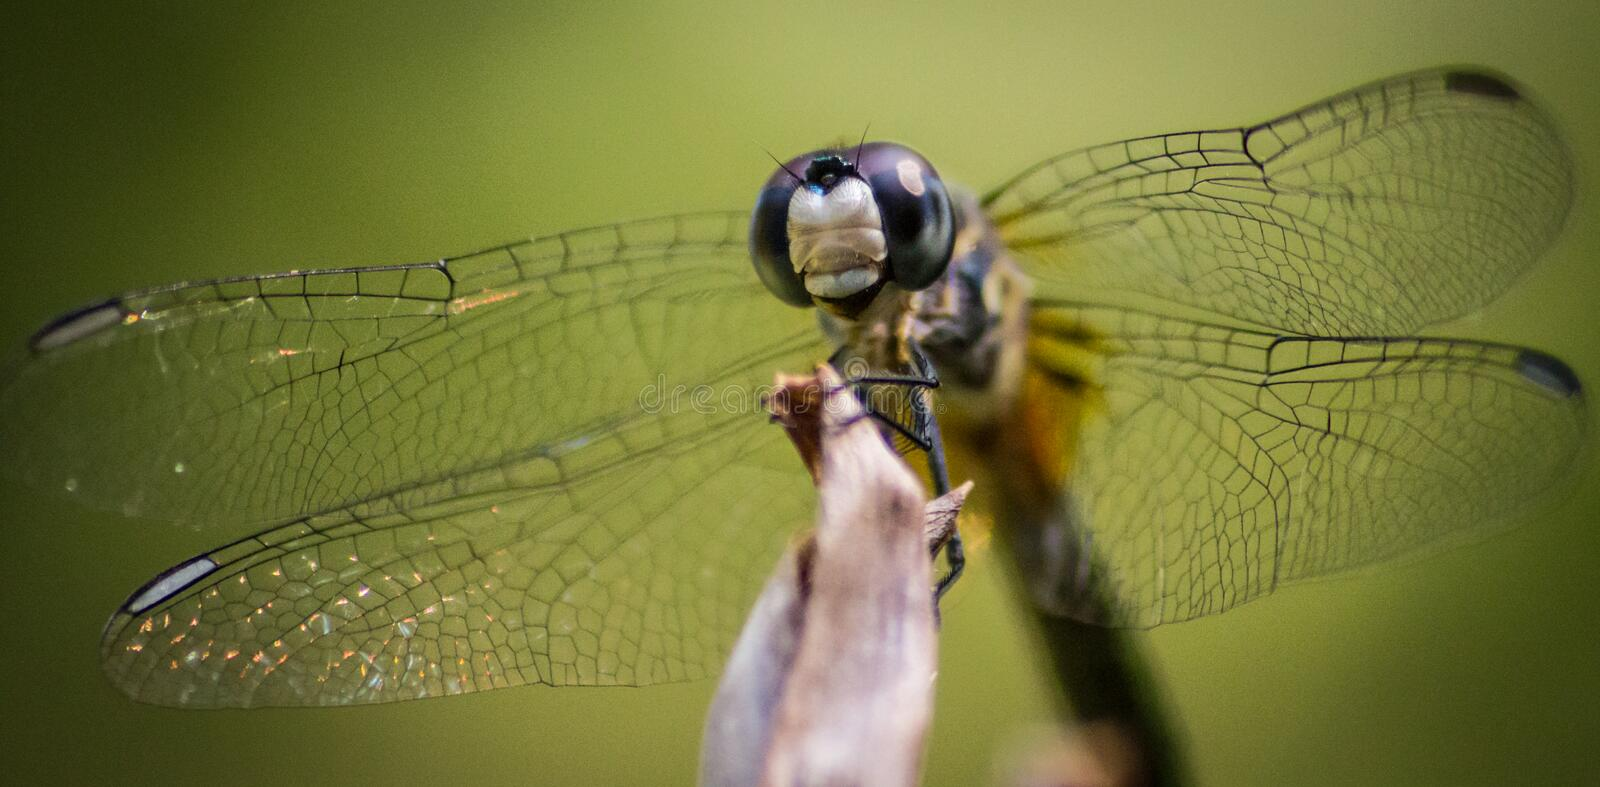 Dragonfly Extreme Close-Up royalty free stock image